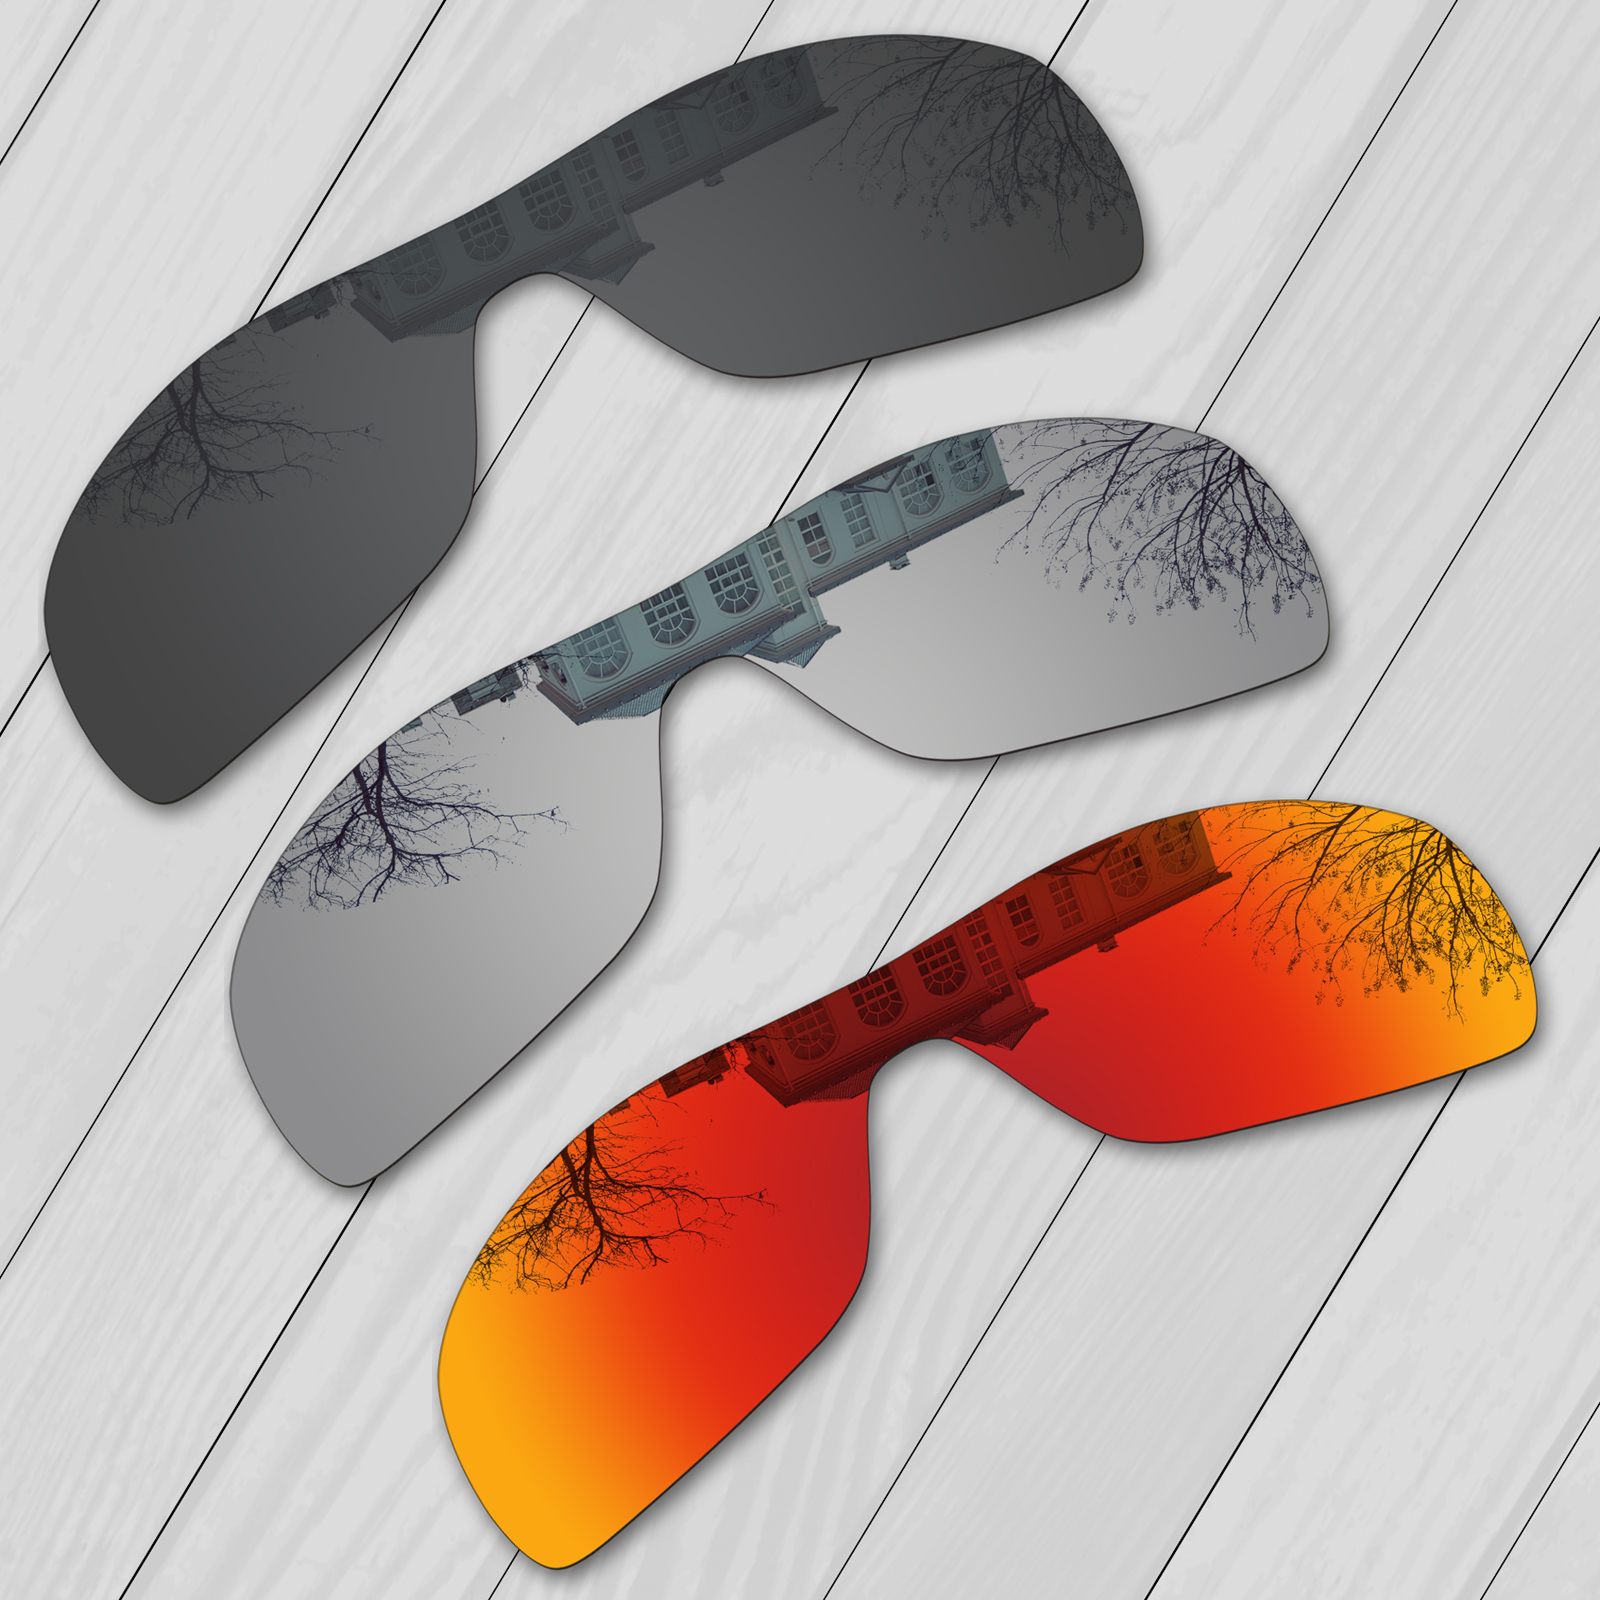 E.O.S 3 Pieces Black & Silver & Fire Red Polarized Replacement Lenses for Oakley Turbine Rotor OO9307 Sunglasses